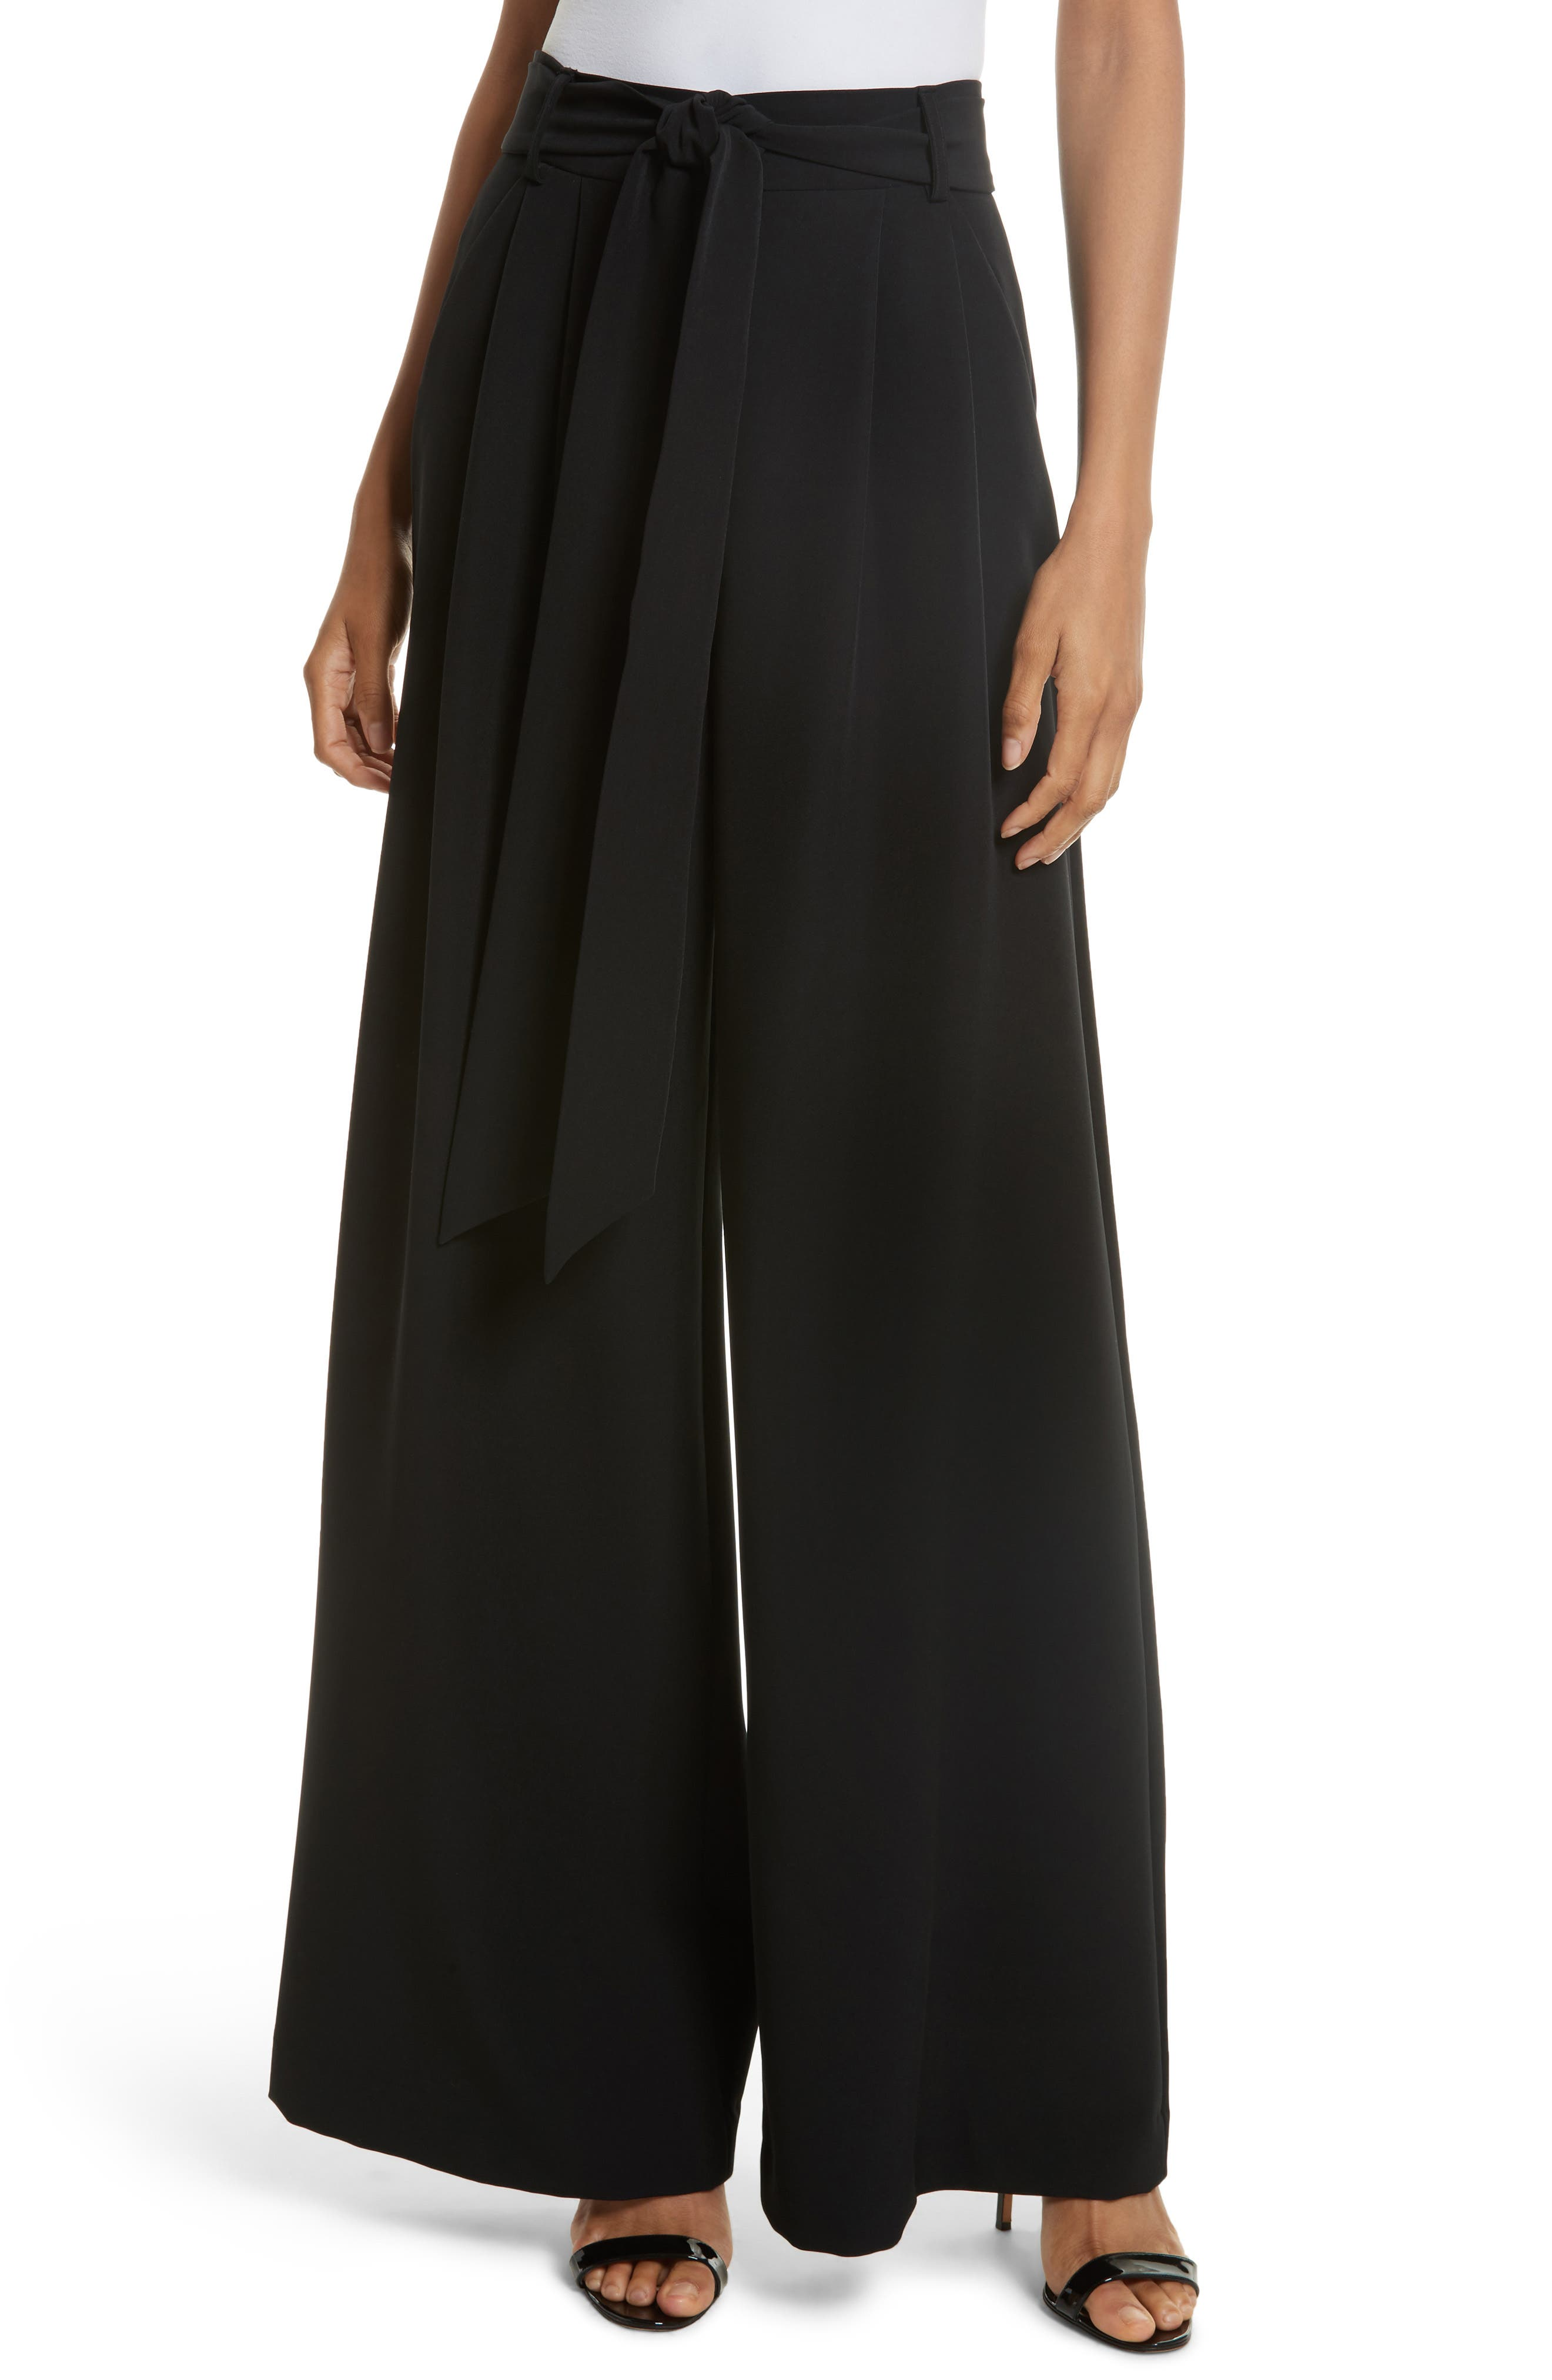 Alternate Image 1 Selected - Milly Natalie Wide Leg Italian Cady Pants